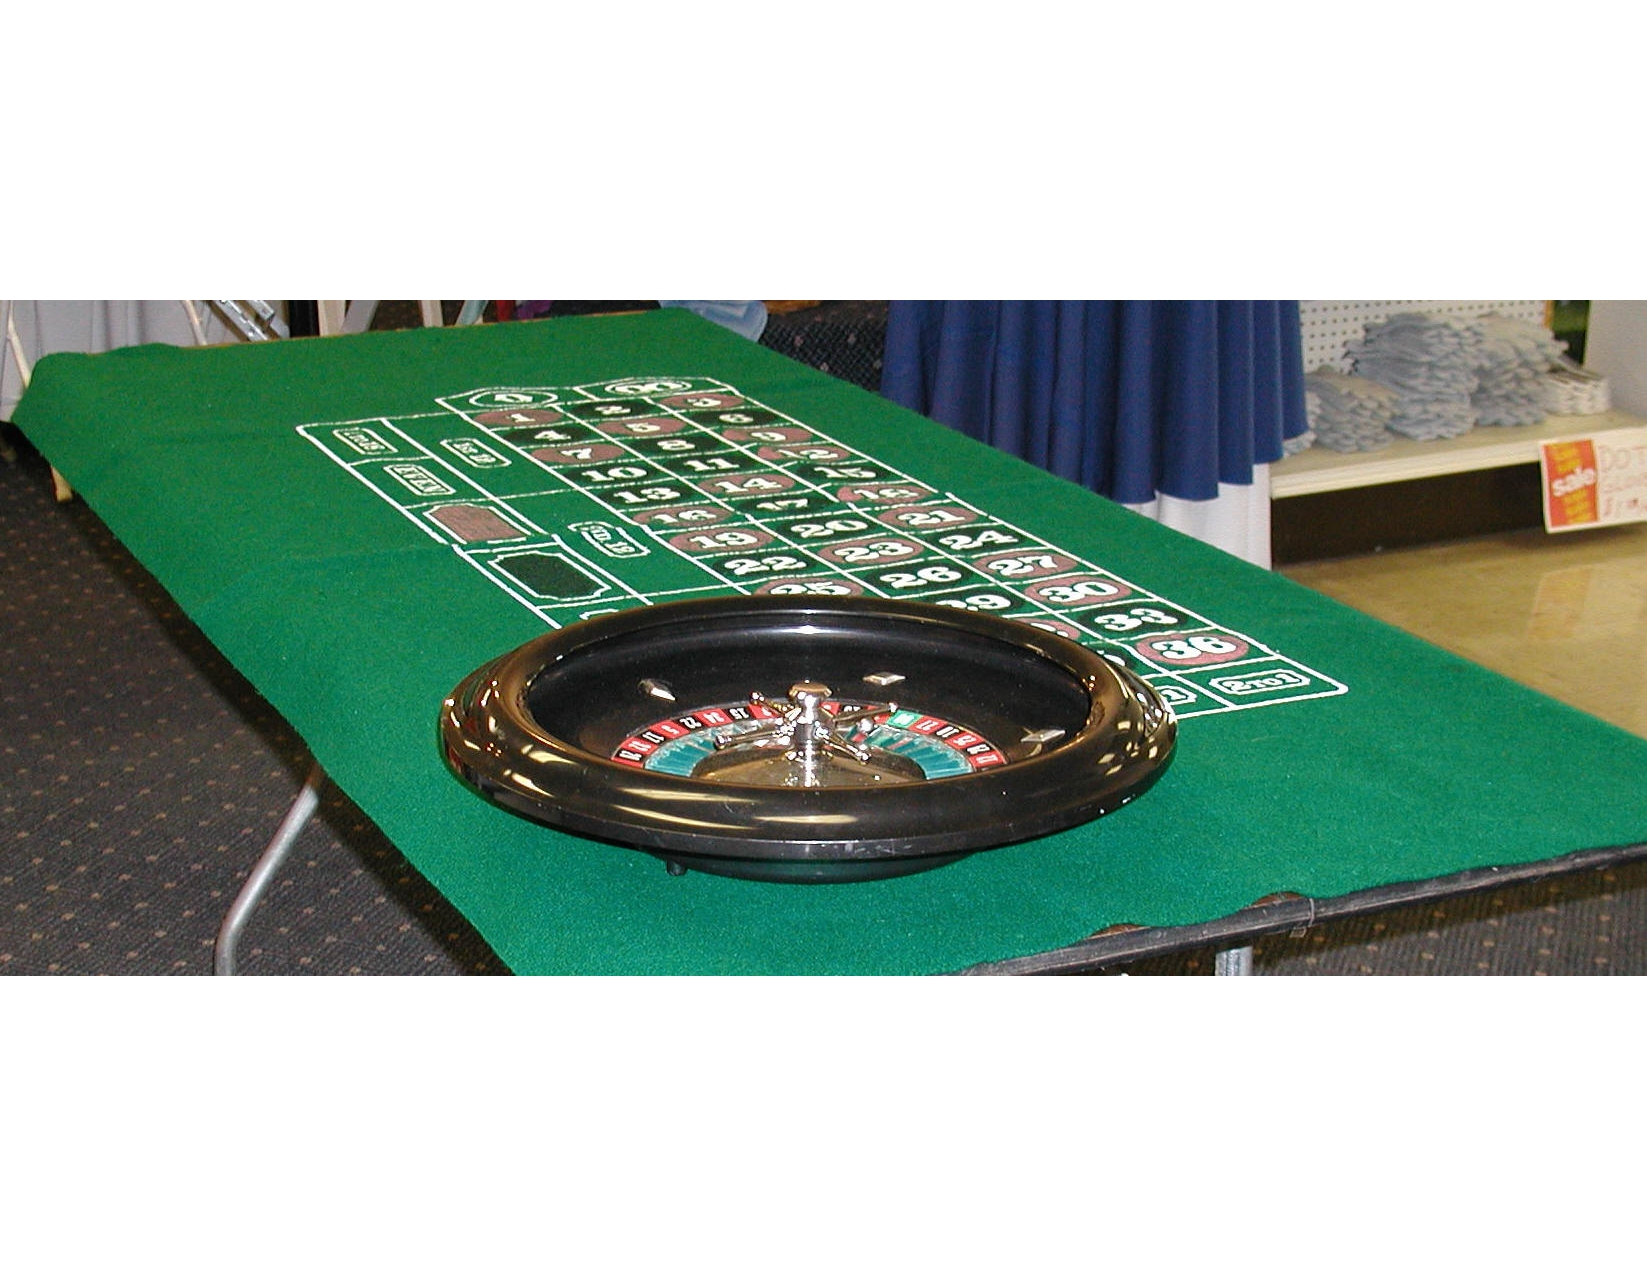 Roulette wheel with felt table top